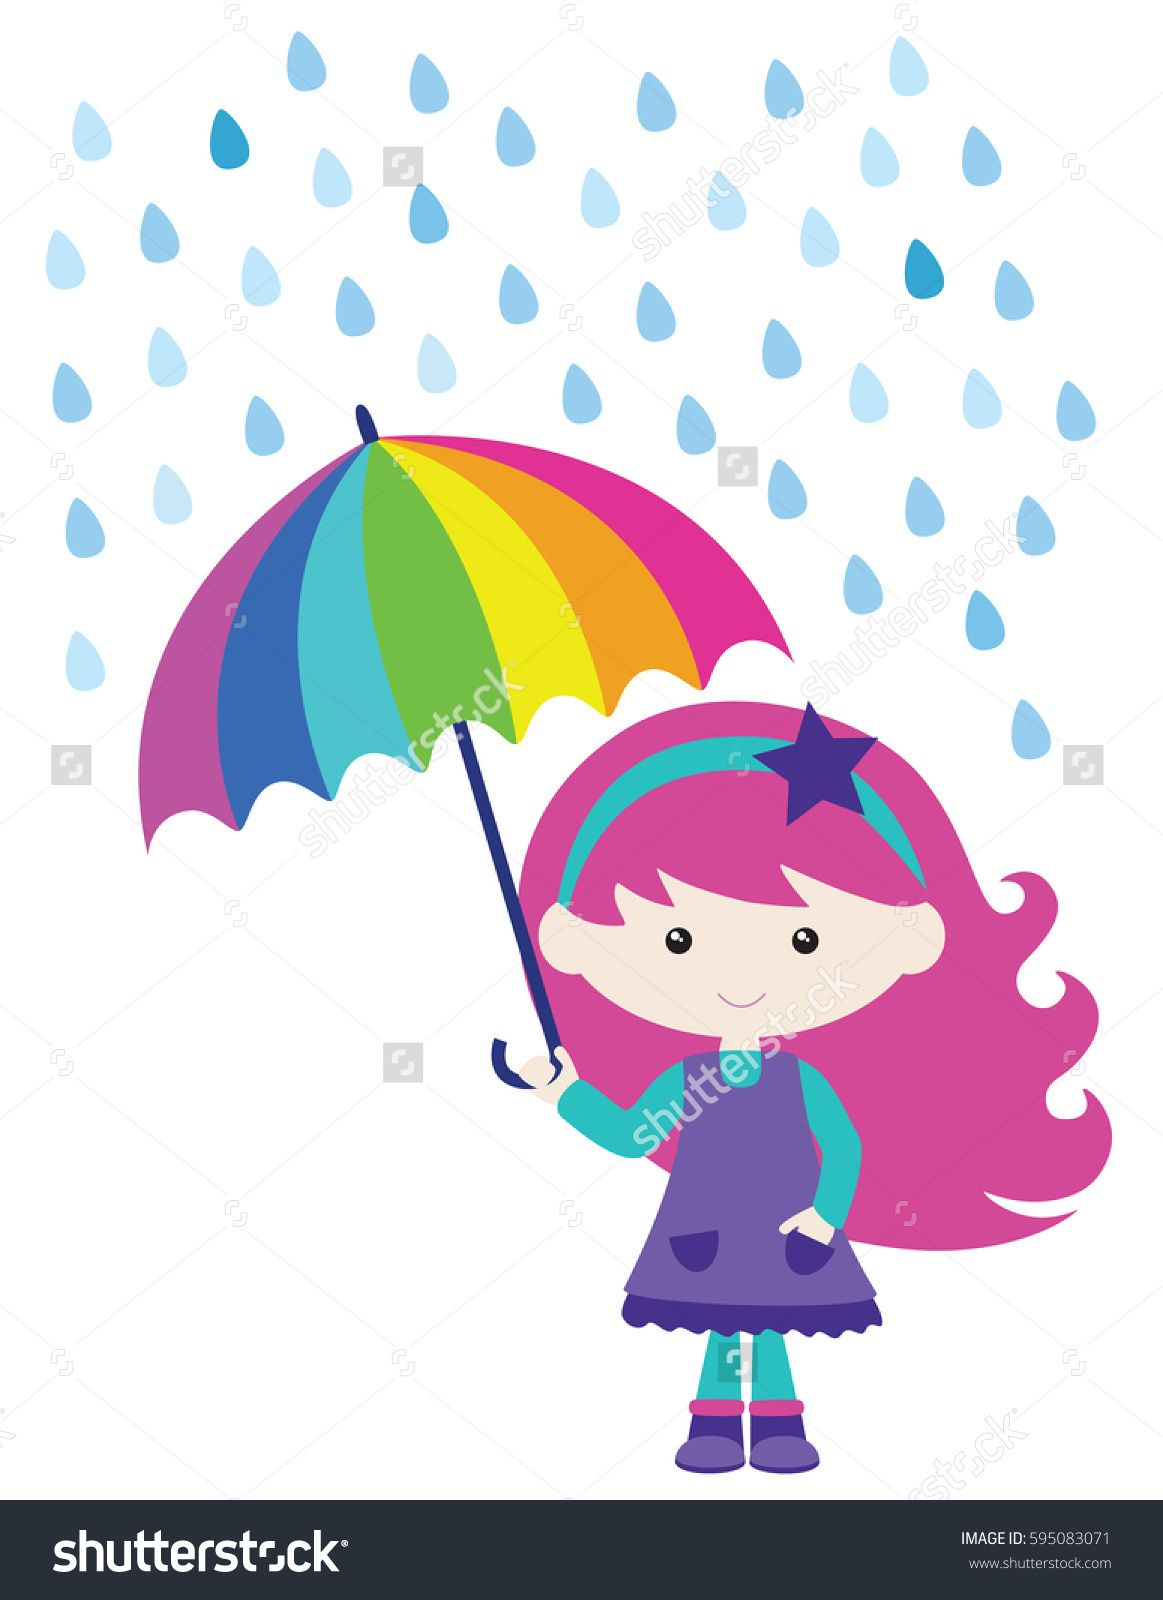 Umbrella and rain clipart vector png transparent library Cute Girl in Rain with Umbrella Vector Illustration ... png transparent library